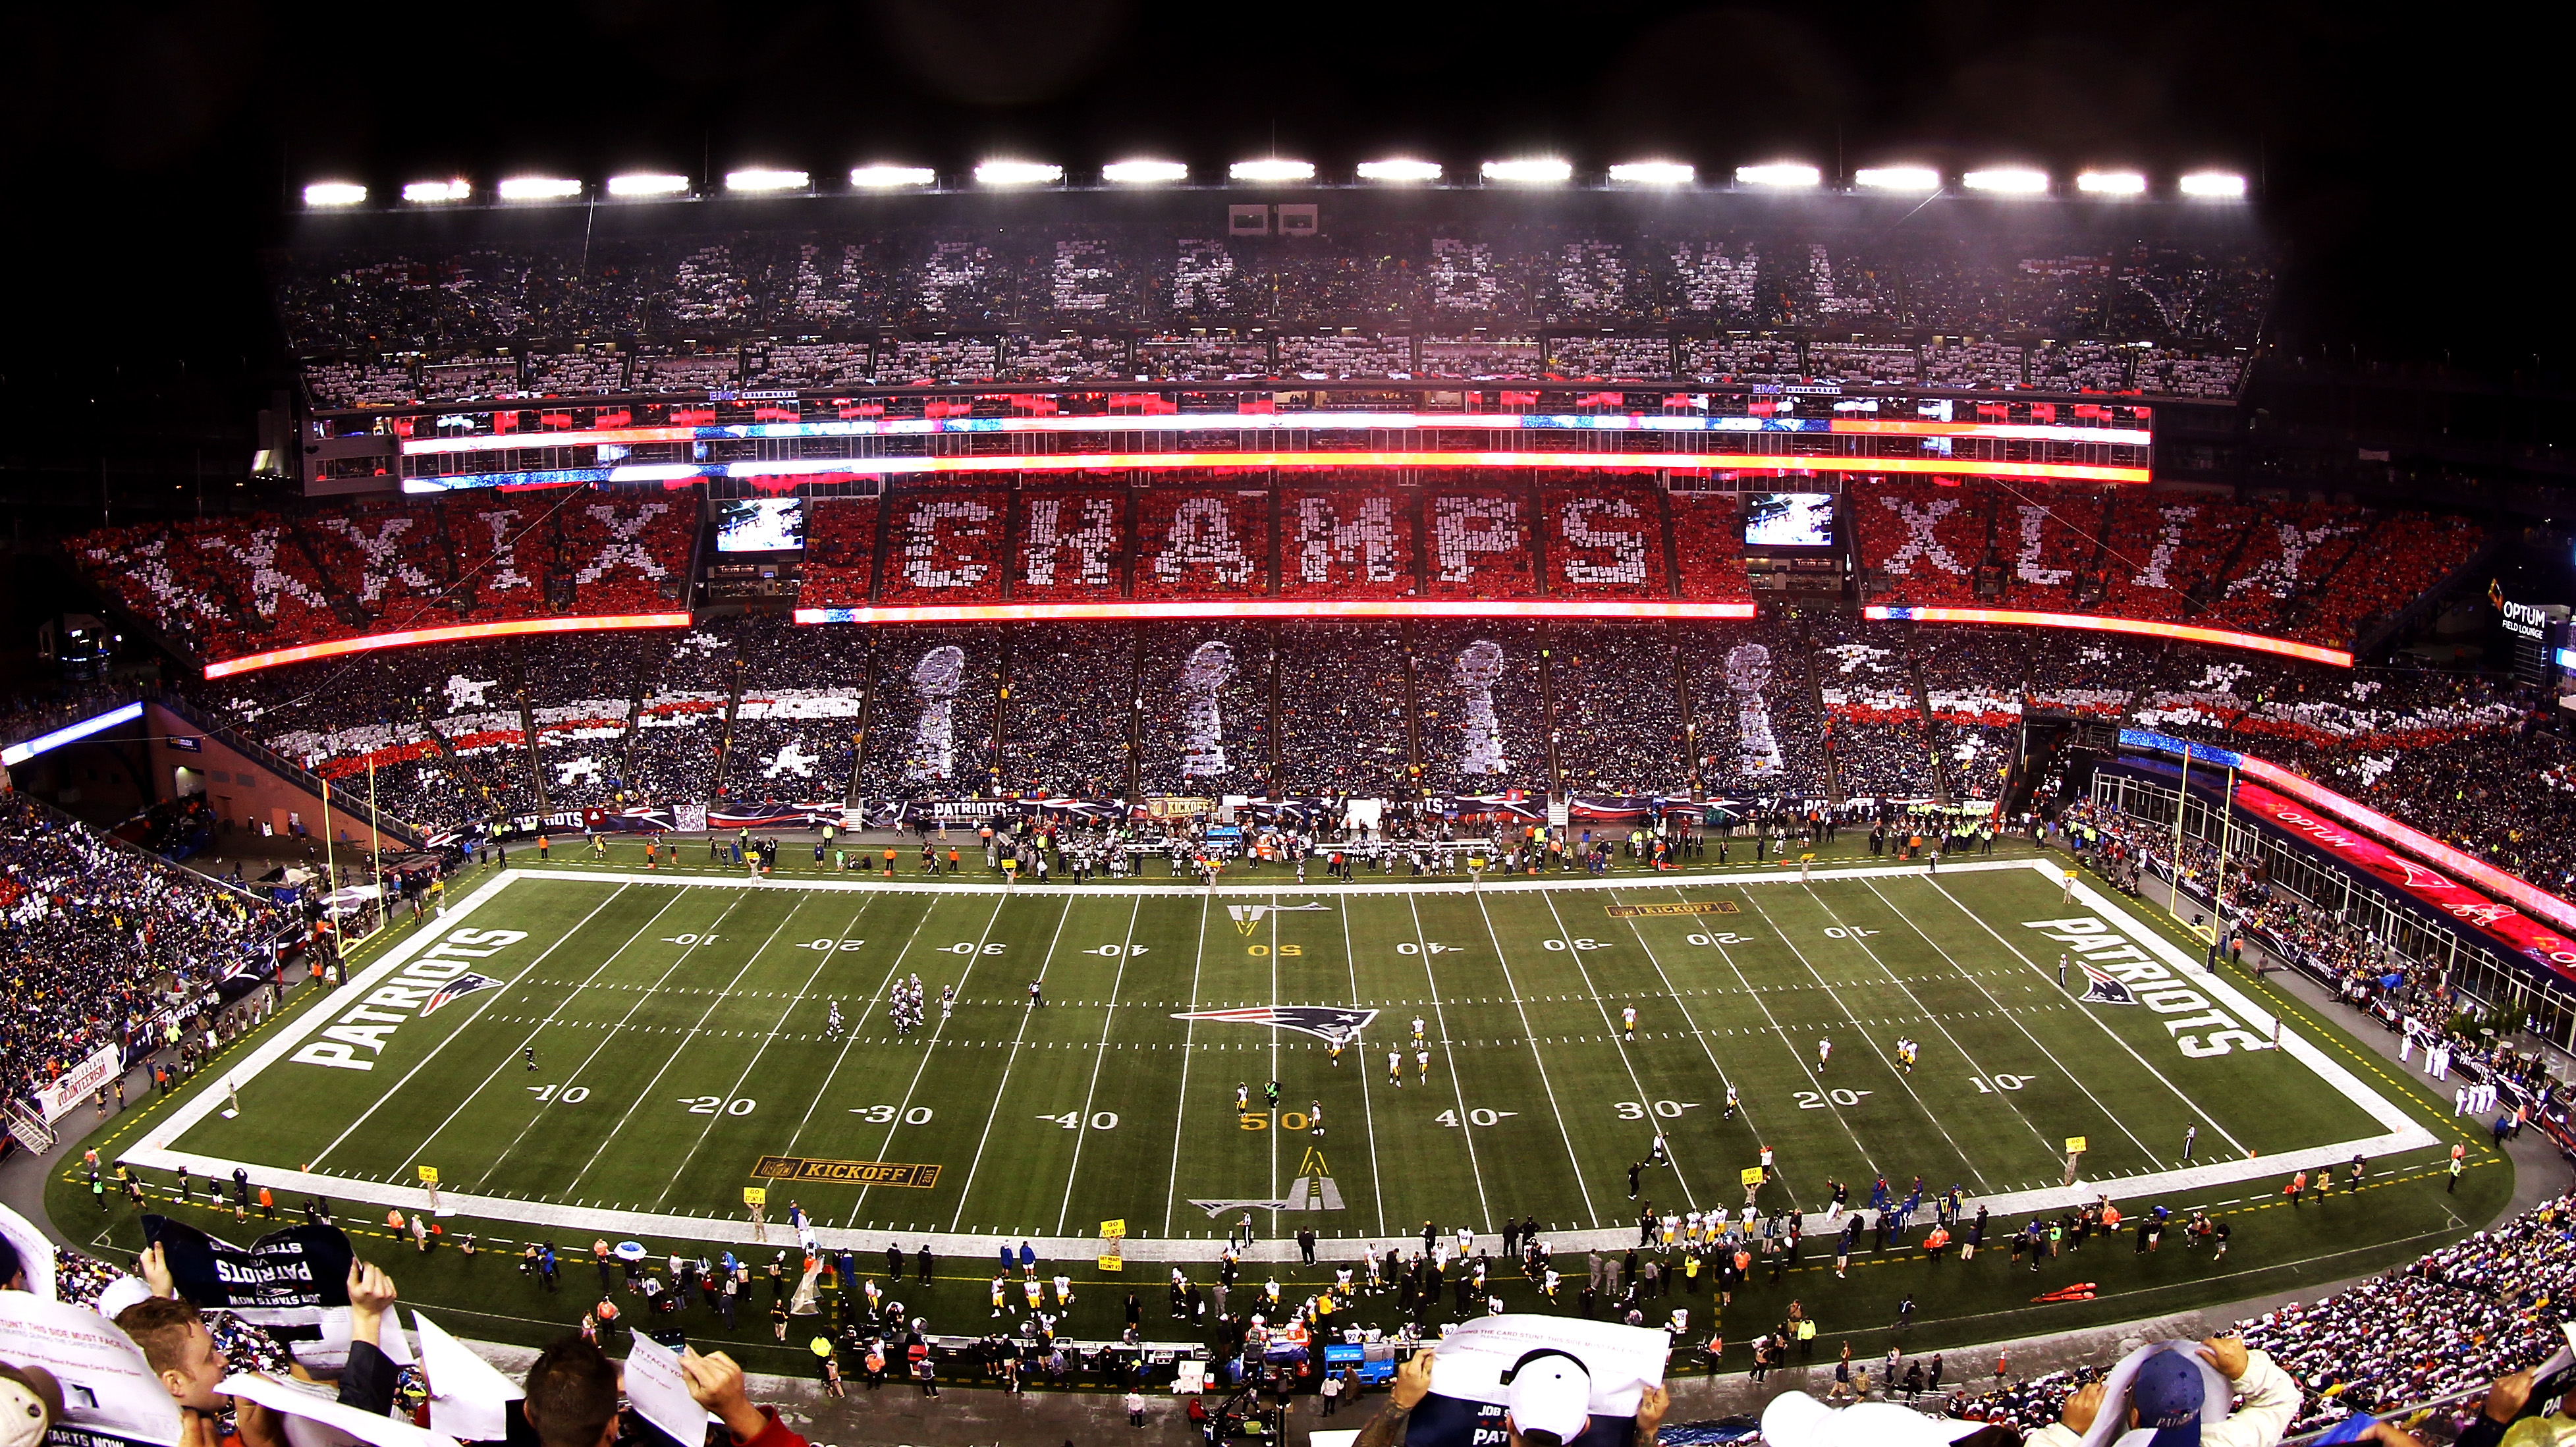 FOXBORO, MA - SEPTEMBER 10: General view as fans hold up cards to celebrate the New England Patriots Super Bowl championships at the start of the game against the Pittsburgh Steelers at Gillette Stadium on September 10, 2015 in Foxboro, Massachusetts.  (Photo by Mike Lawrie/Getty Images)